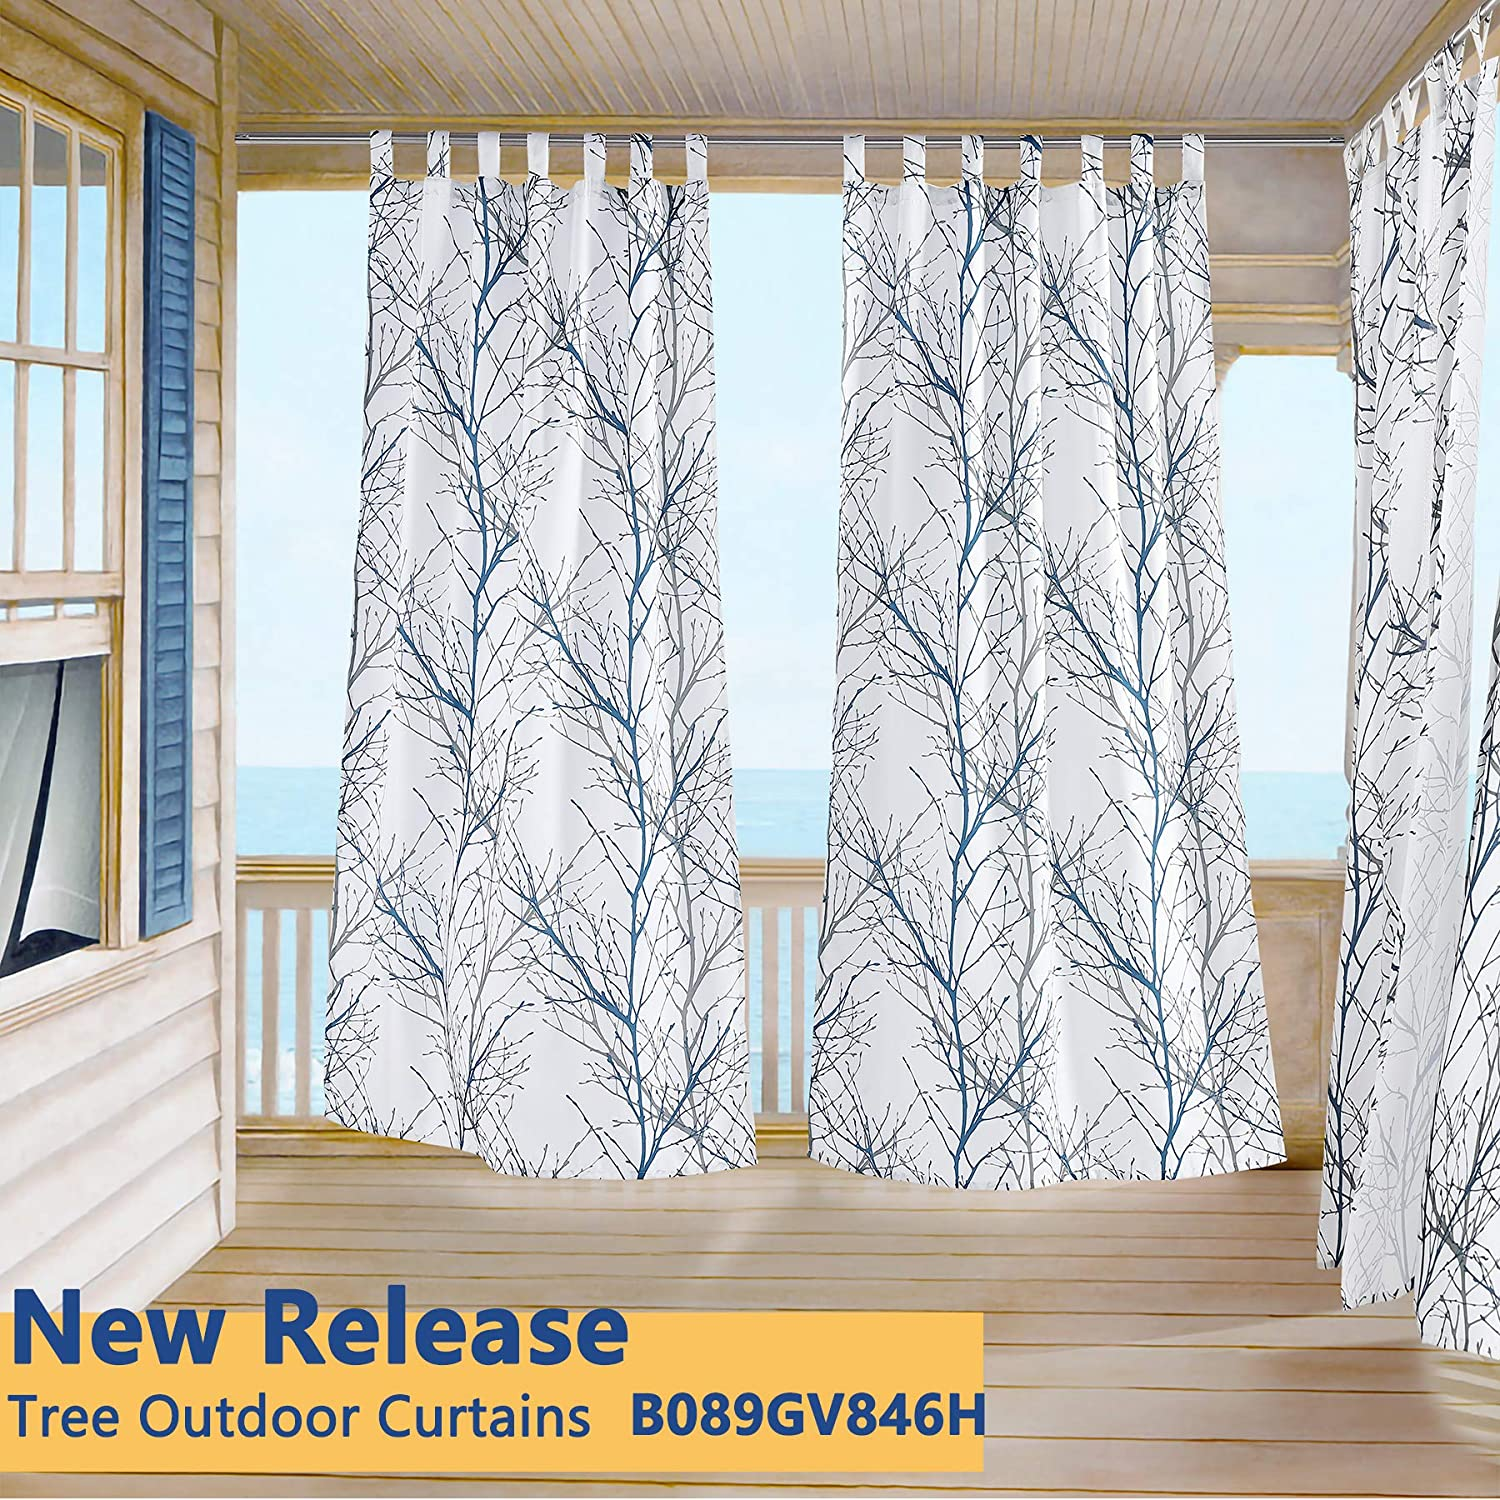 fmfunctex blue white curtains 84 for living room grey tree branches print curtain set linen textured semi sheer window drapes for bedroom grommet